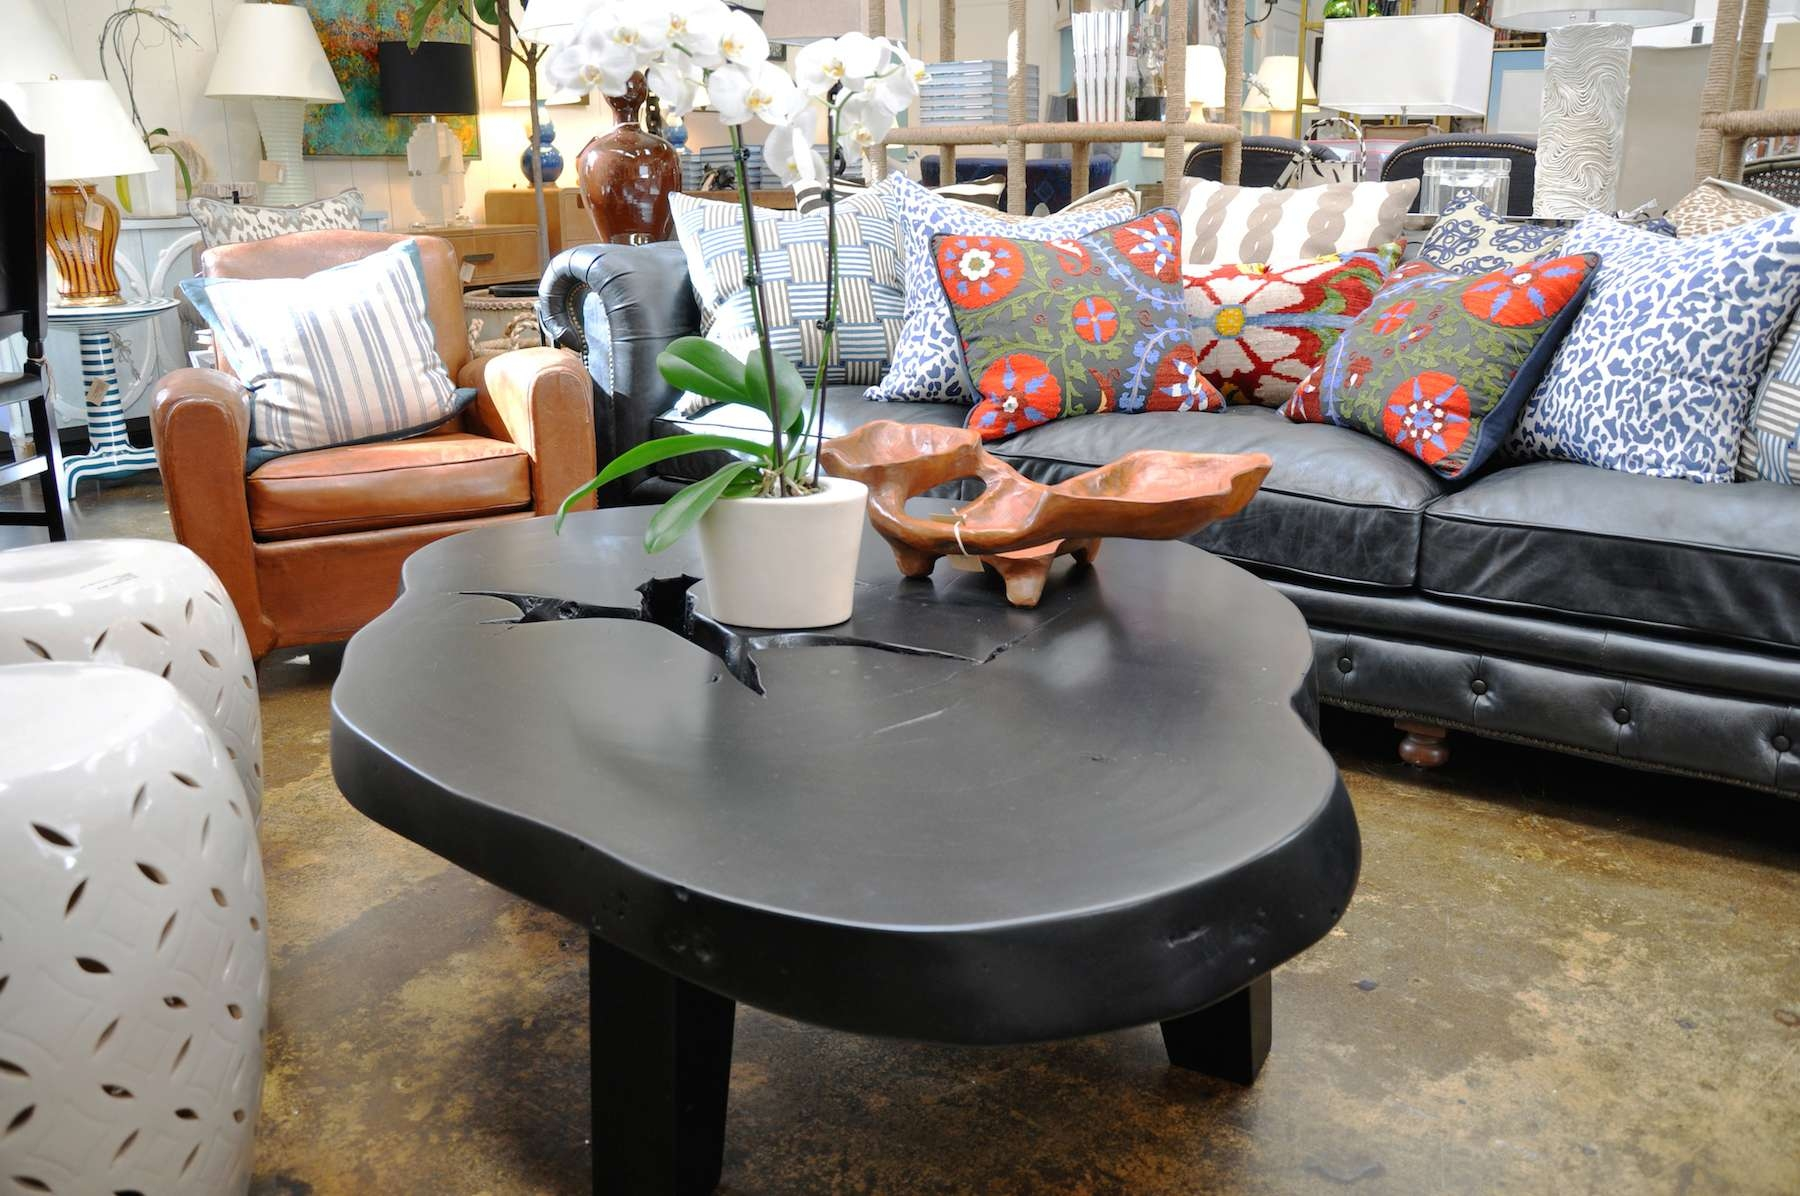 Free Form Albezia Wood Coffee Table – Mecox Gardens With Regard To Well Liked Free Form Coffee Tables (View 8 of 20)